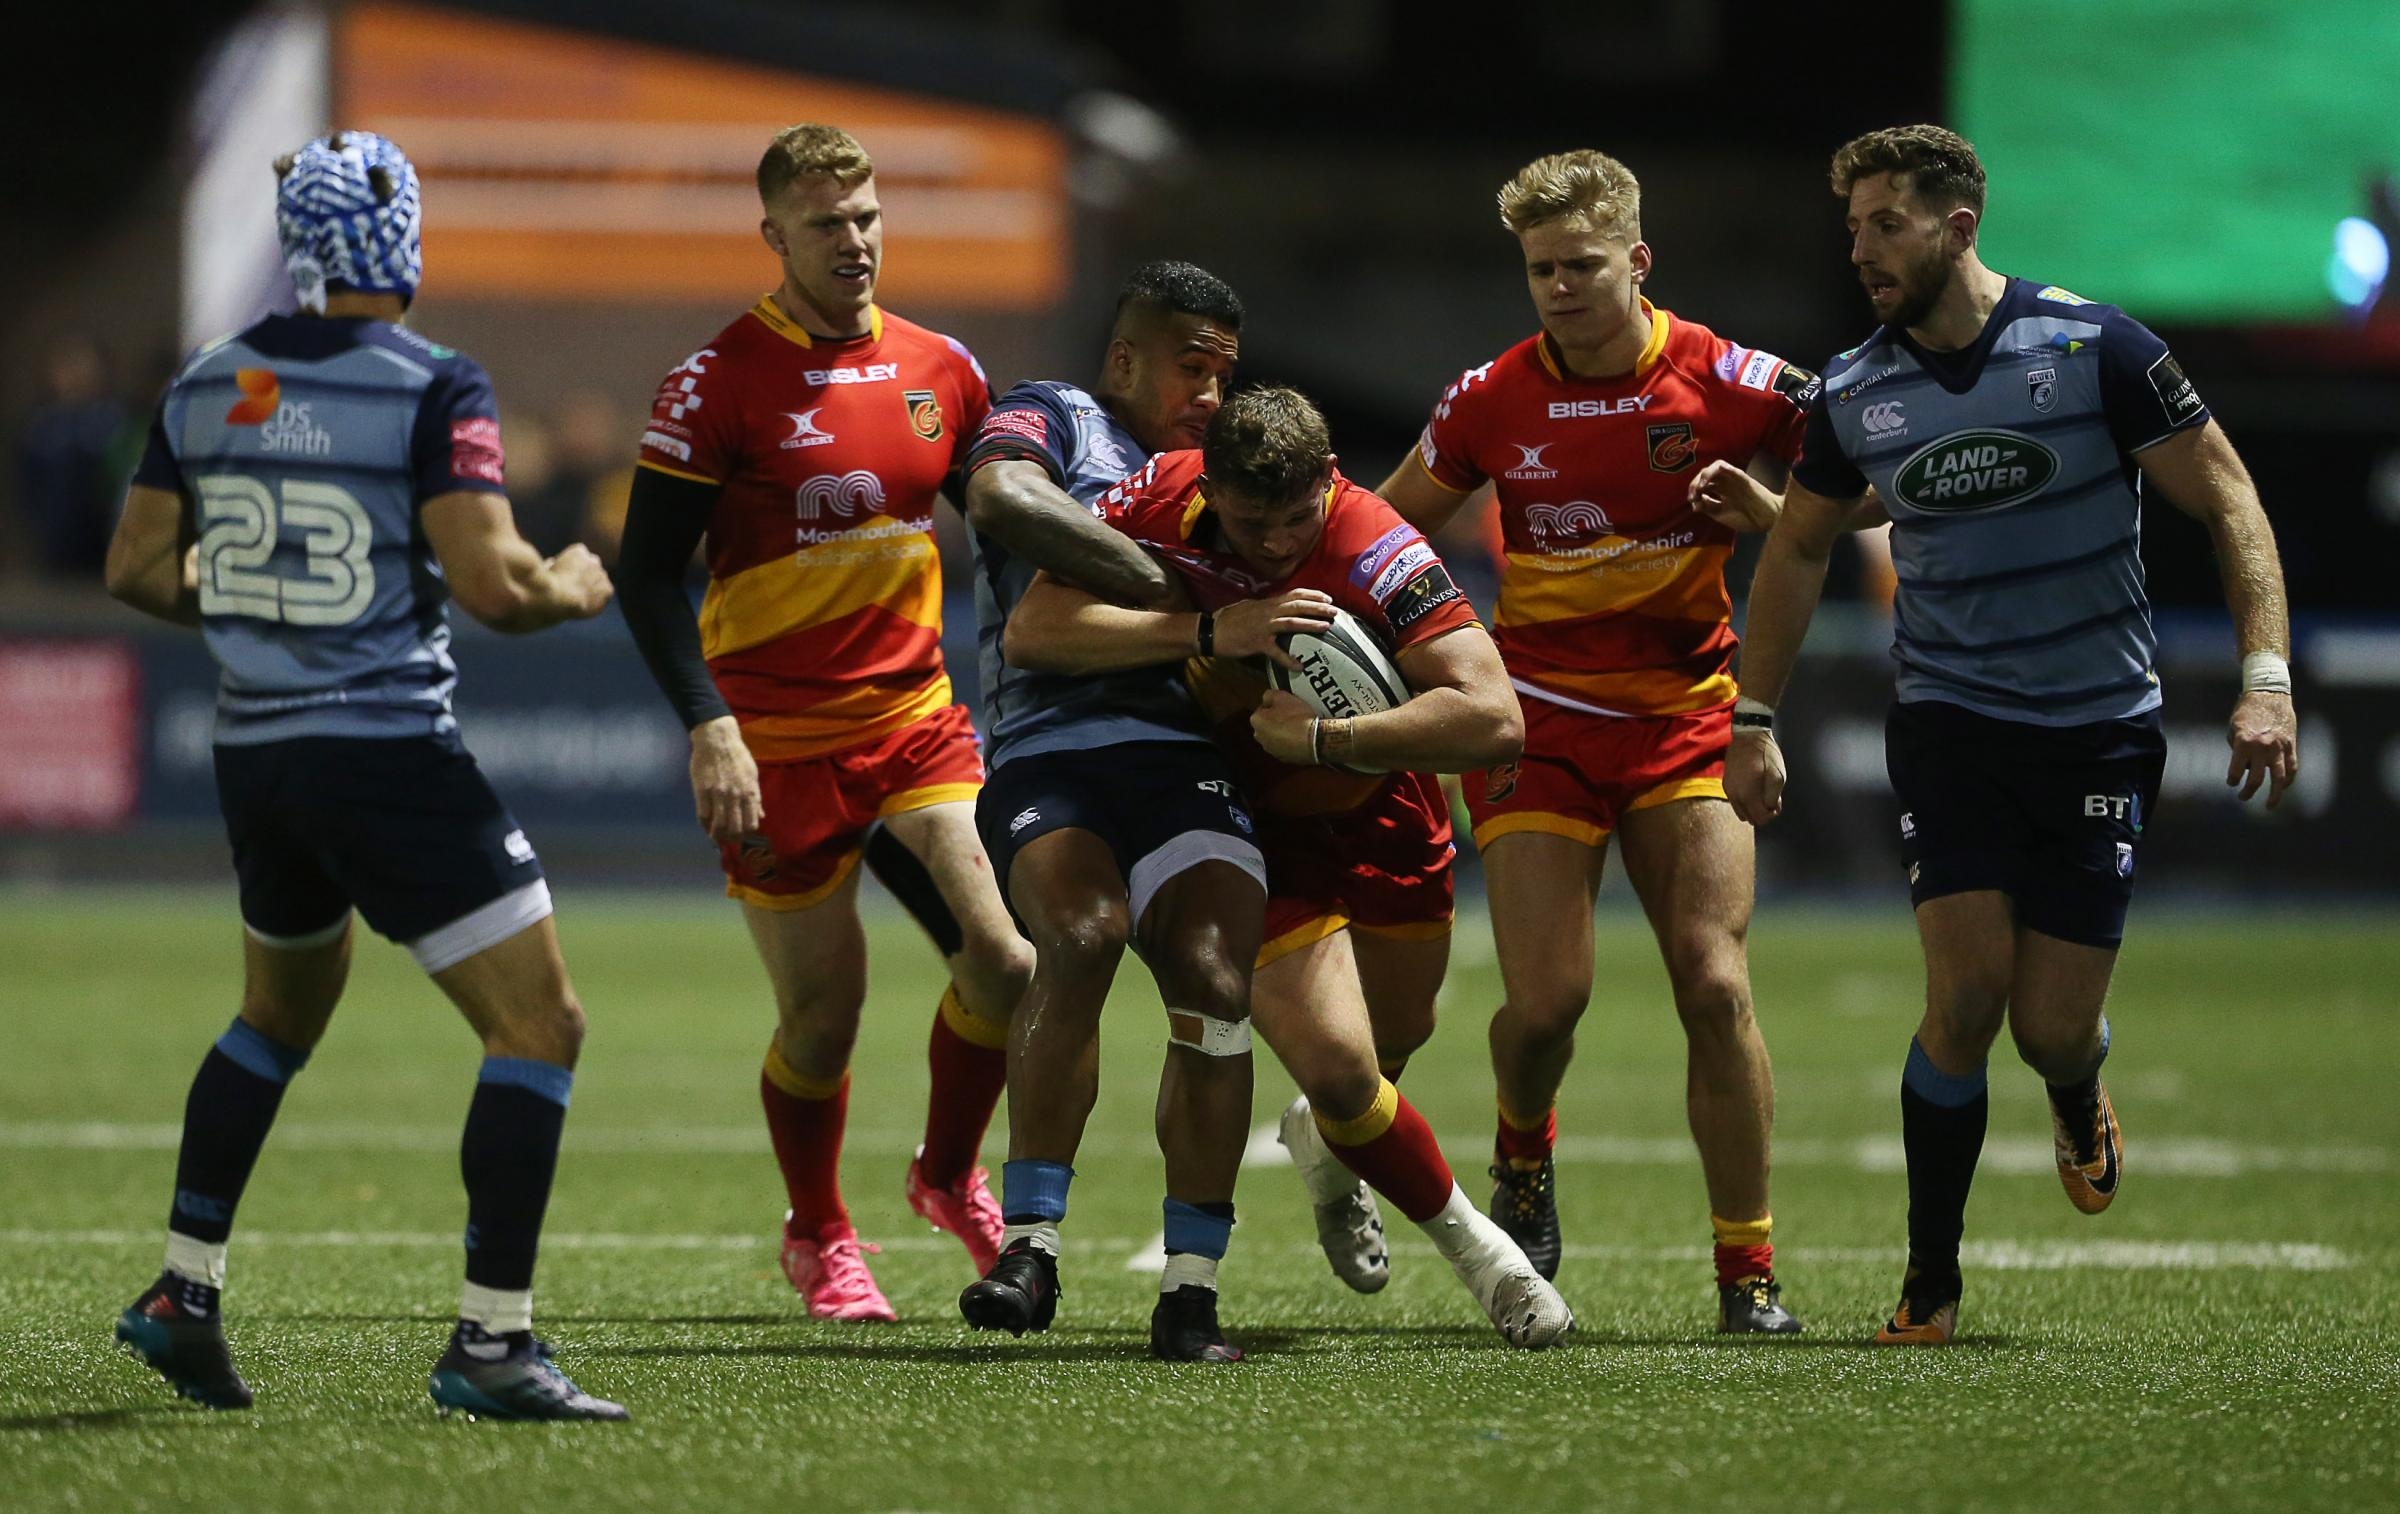 DERBY BATTLE: Elliot Dee on the charge for the Dragons at Cardiff Blues in October